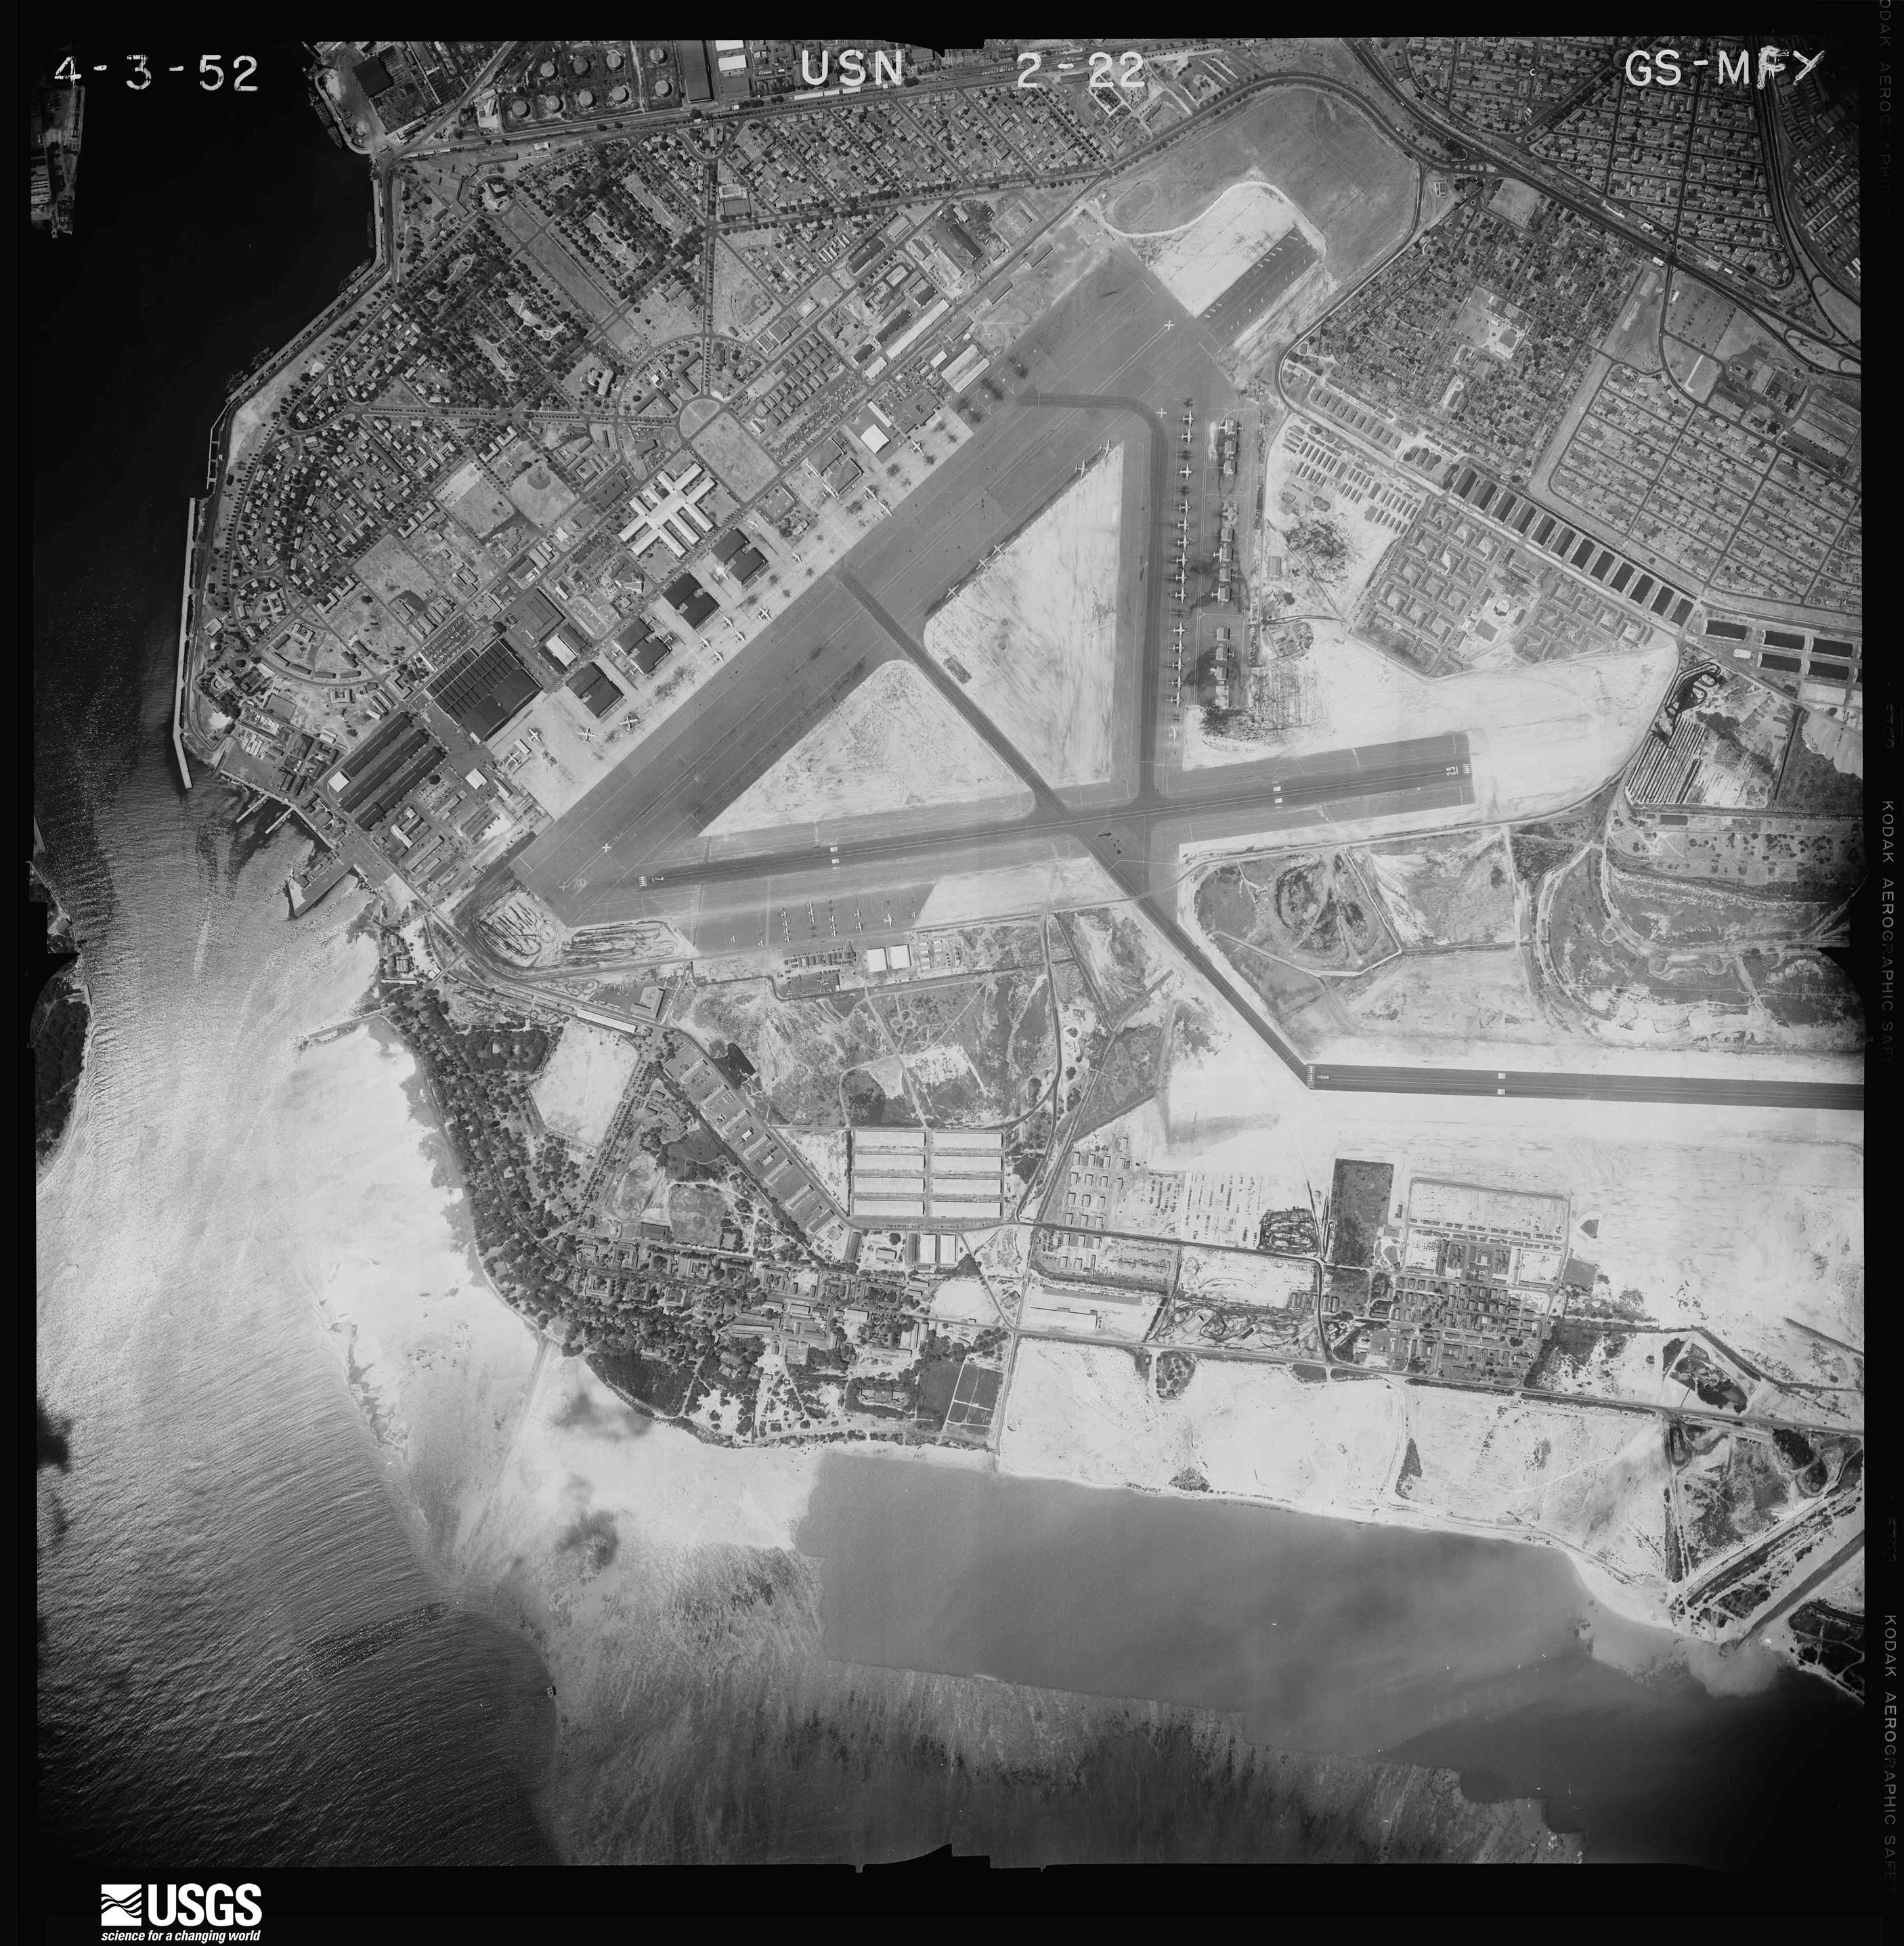 Aerial photograph of Hickam AFB, 1952